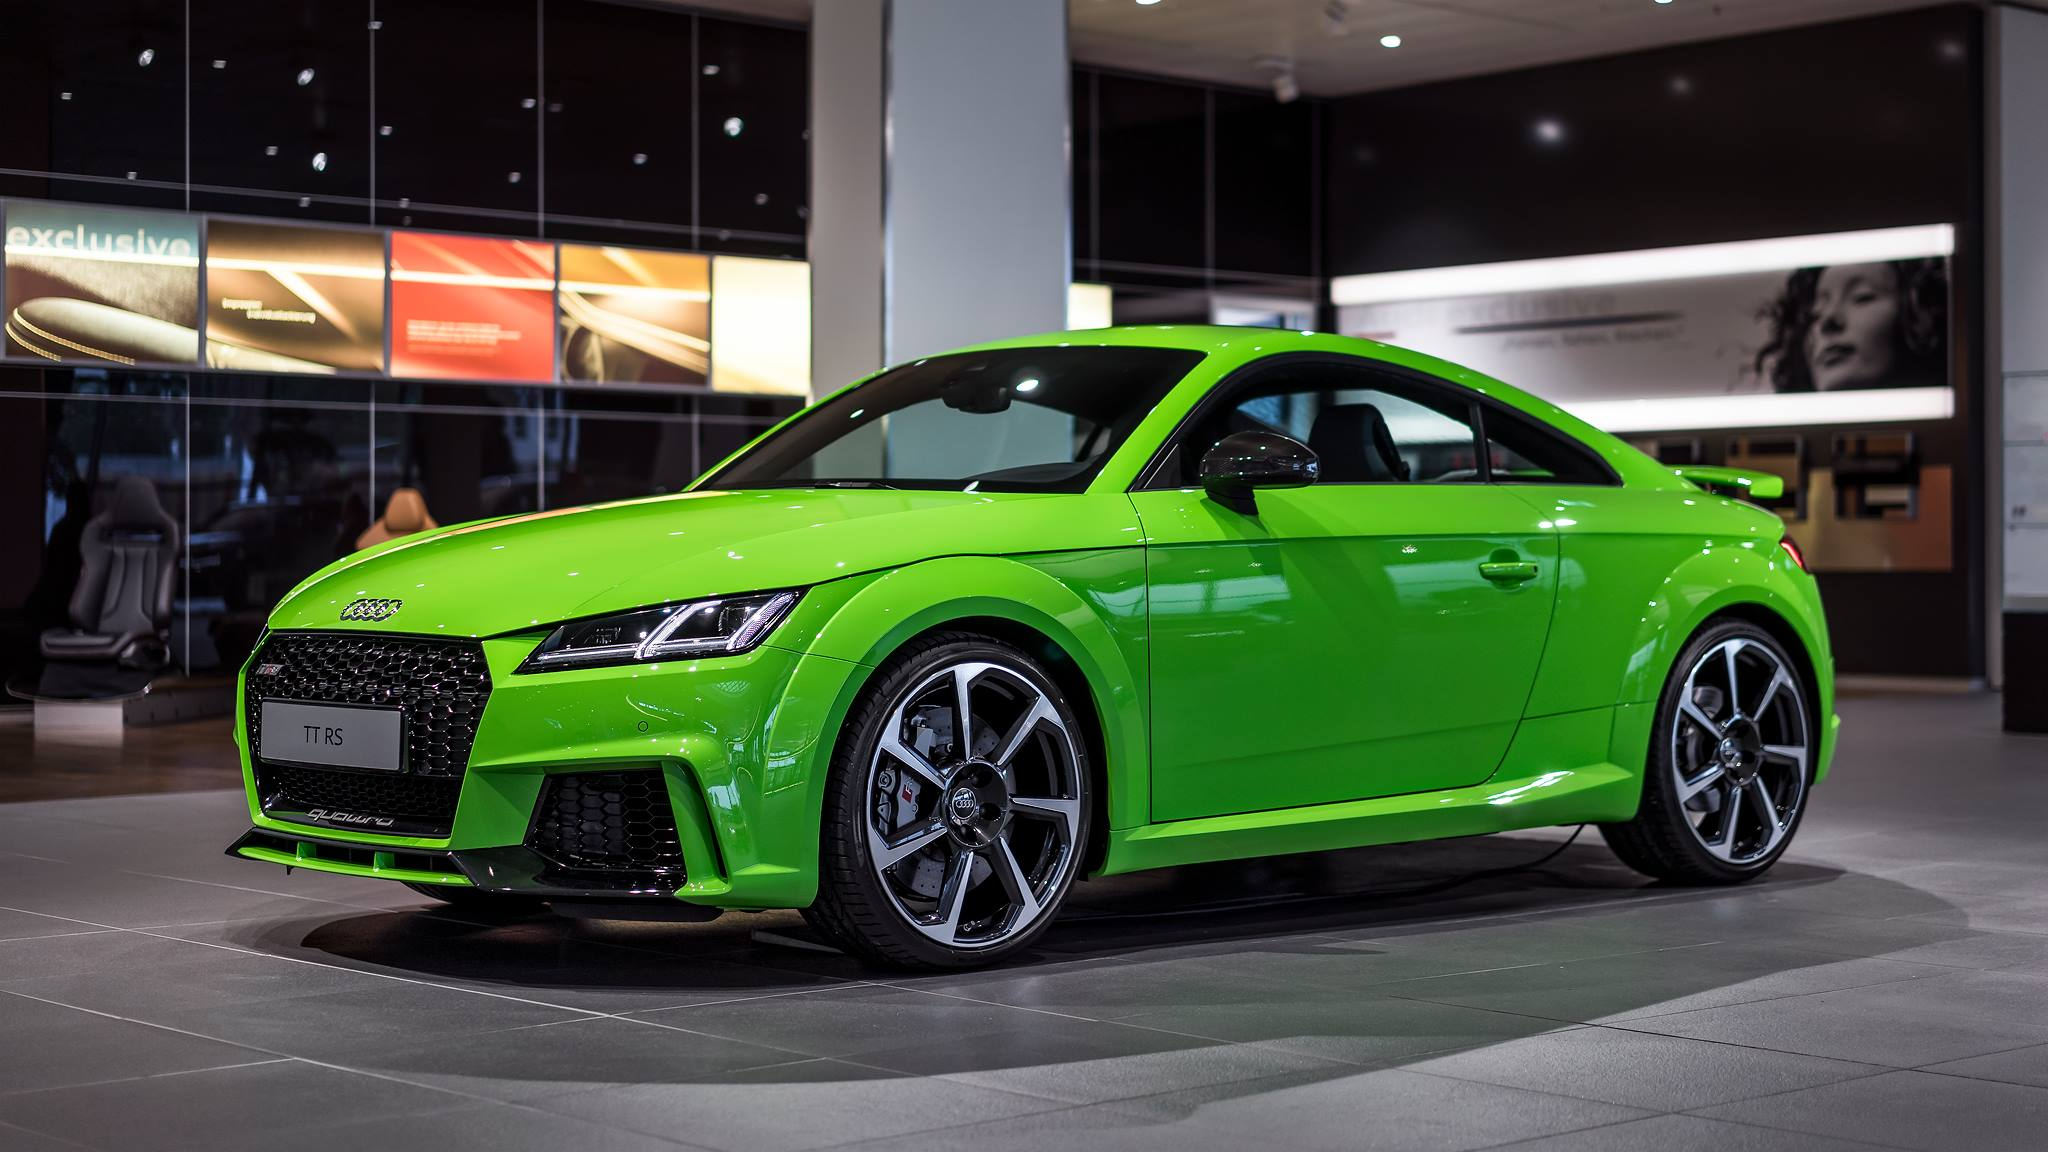 2016 Audi Q5 >> 2017 Audi TT RS in Lime Green Looks Like a Tiny Exotic Car - autoevolution